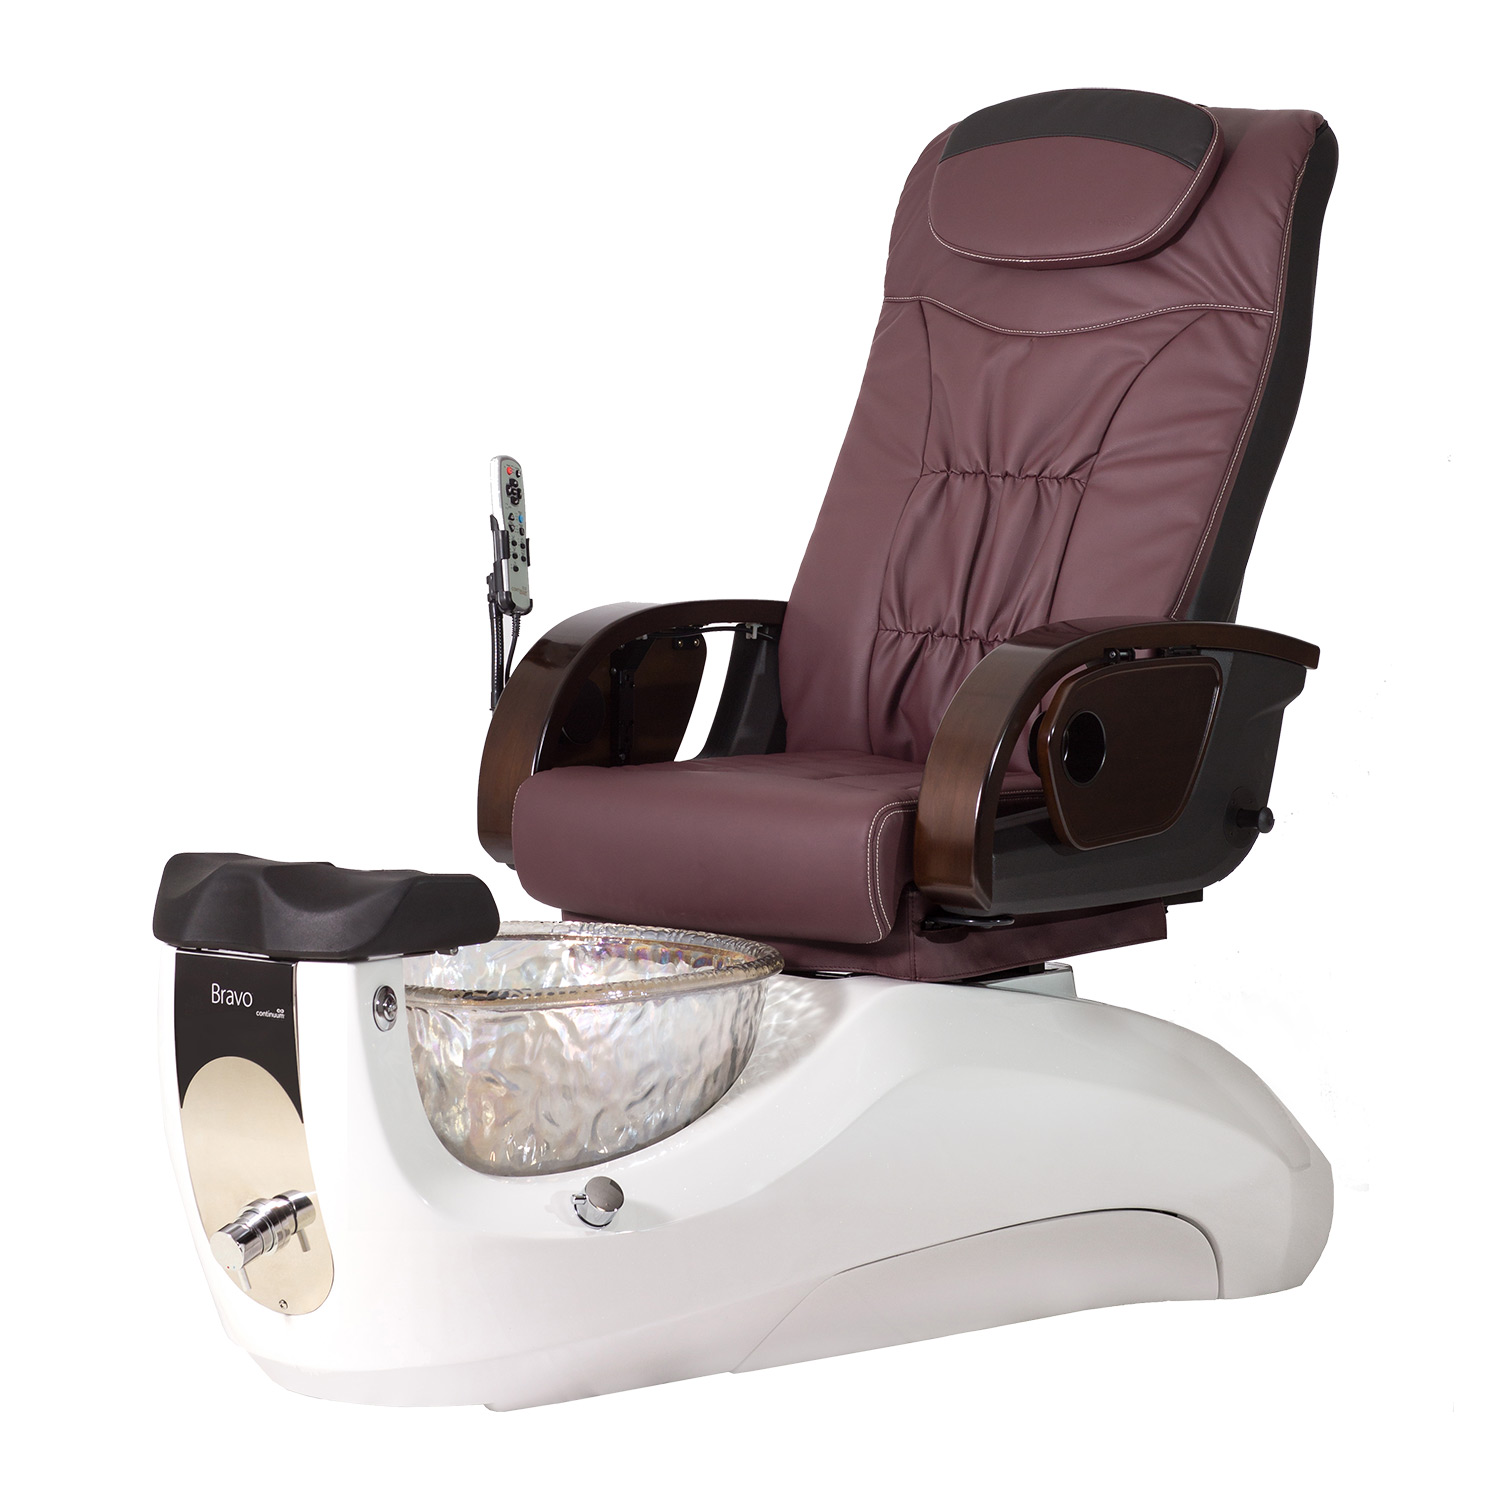 Continuum Bravo with Glass Basin Pedicure Spa Chair alternative product image 10